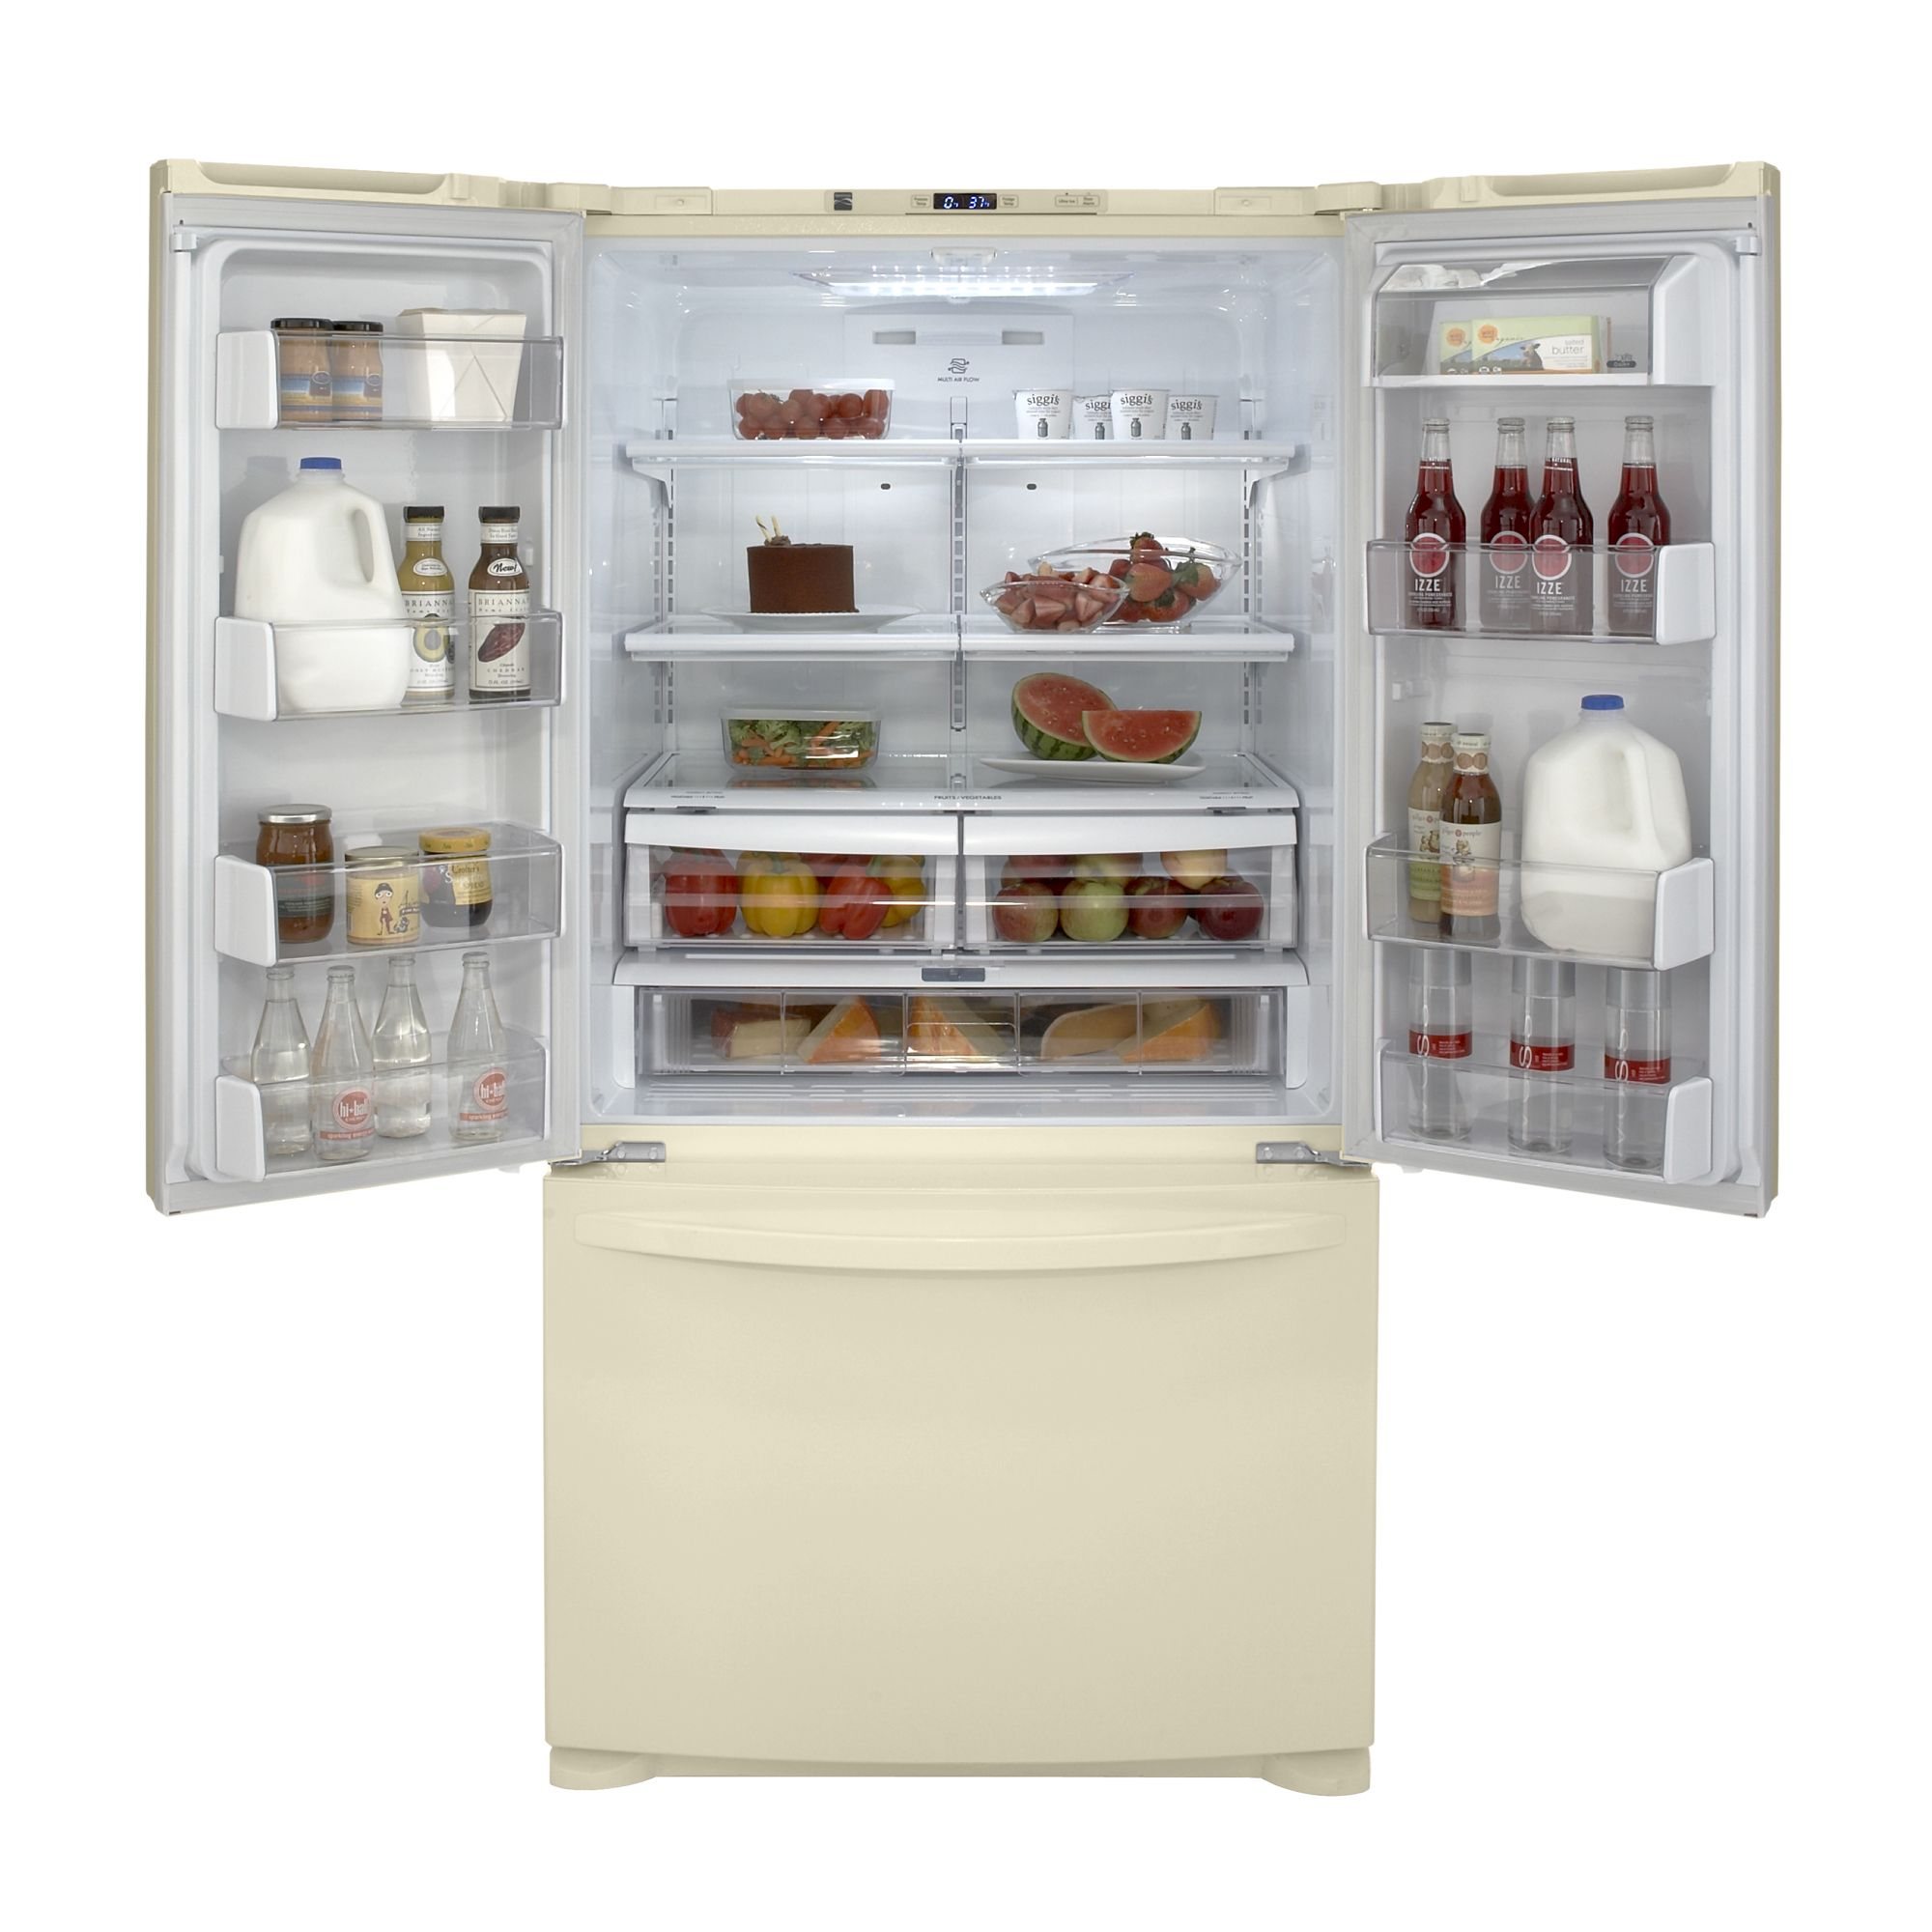 Kenmore 25.0 cu. ft. French Door Bottom-Freezer Refrigerator- Bisque